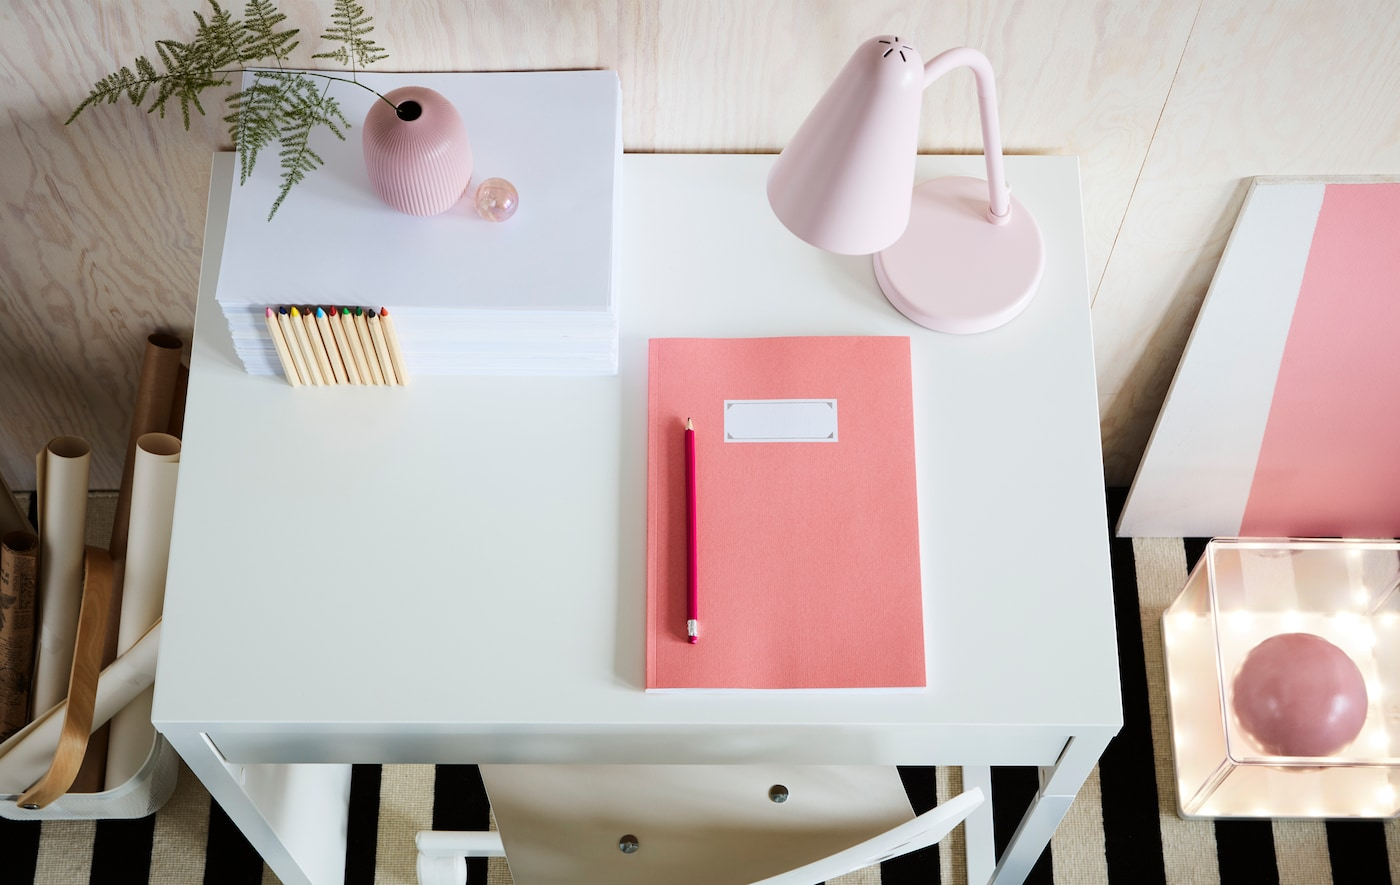 White IKEA MICKE desk with pink notepad, vase and lamp.